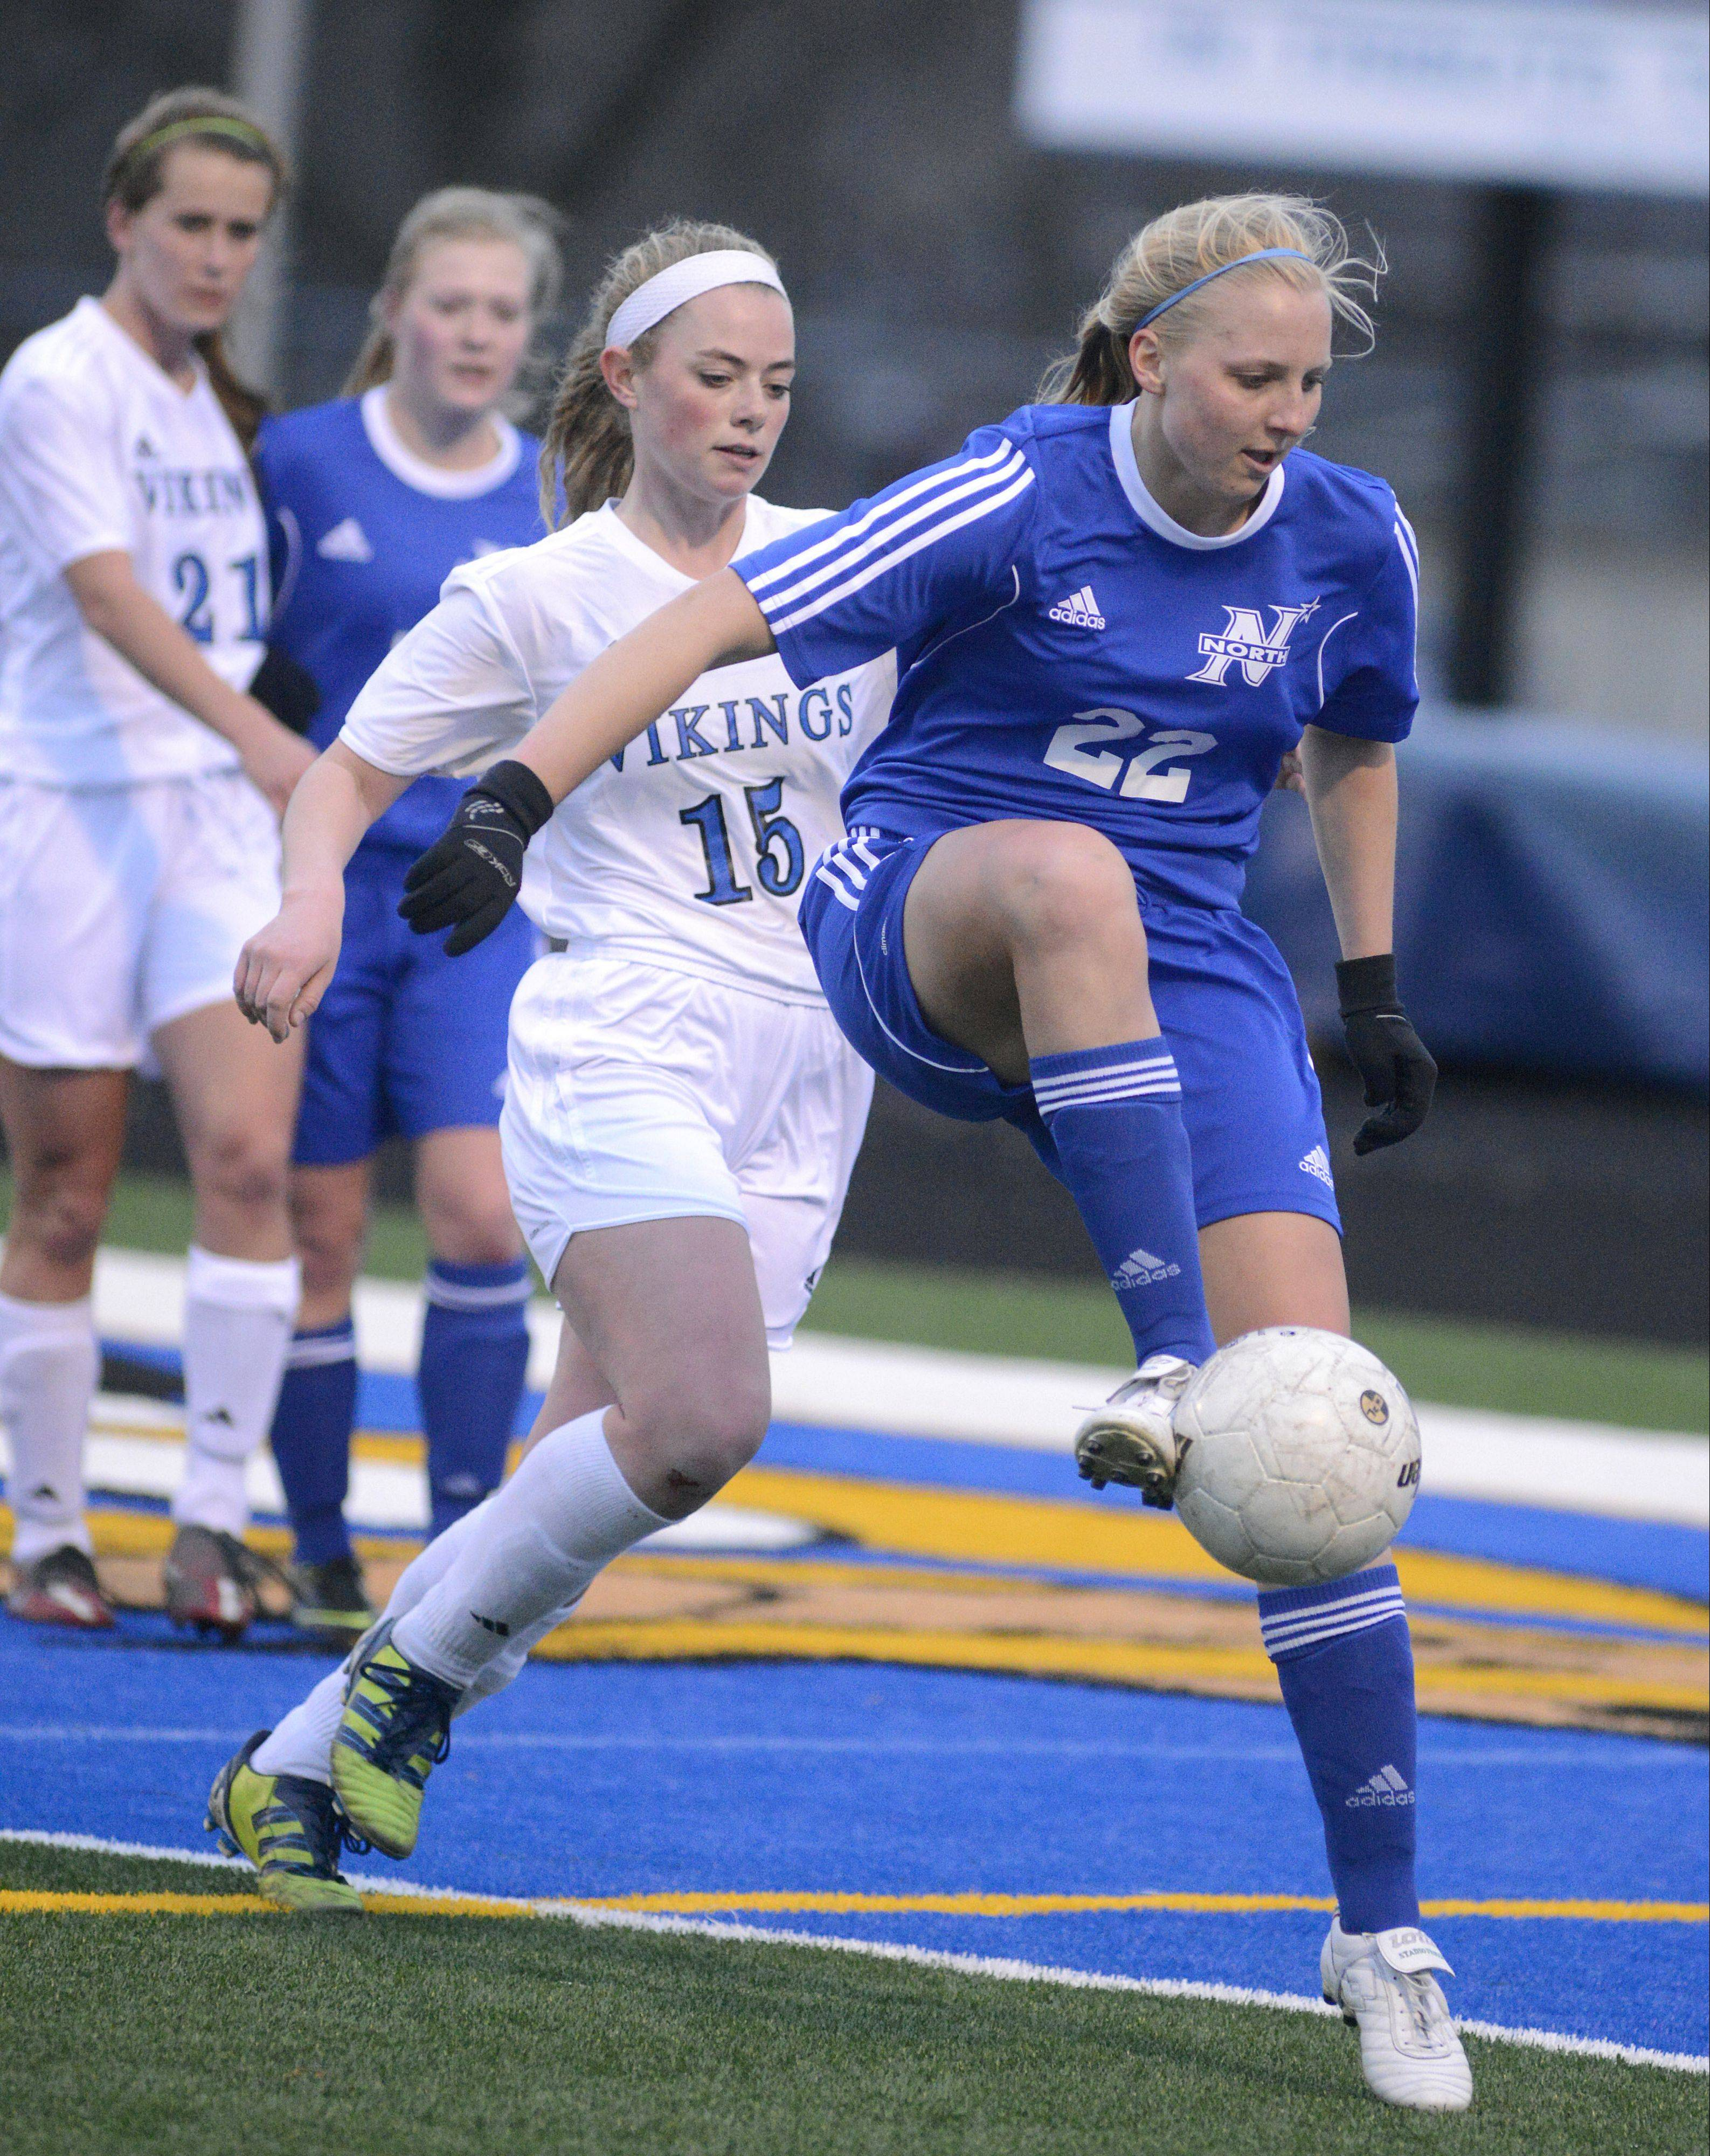 St. Charles North's Sophie Pohl receives and controls the ball before Geneva's Annie Waldoch can get to it Tuesday in Geneva.